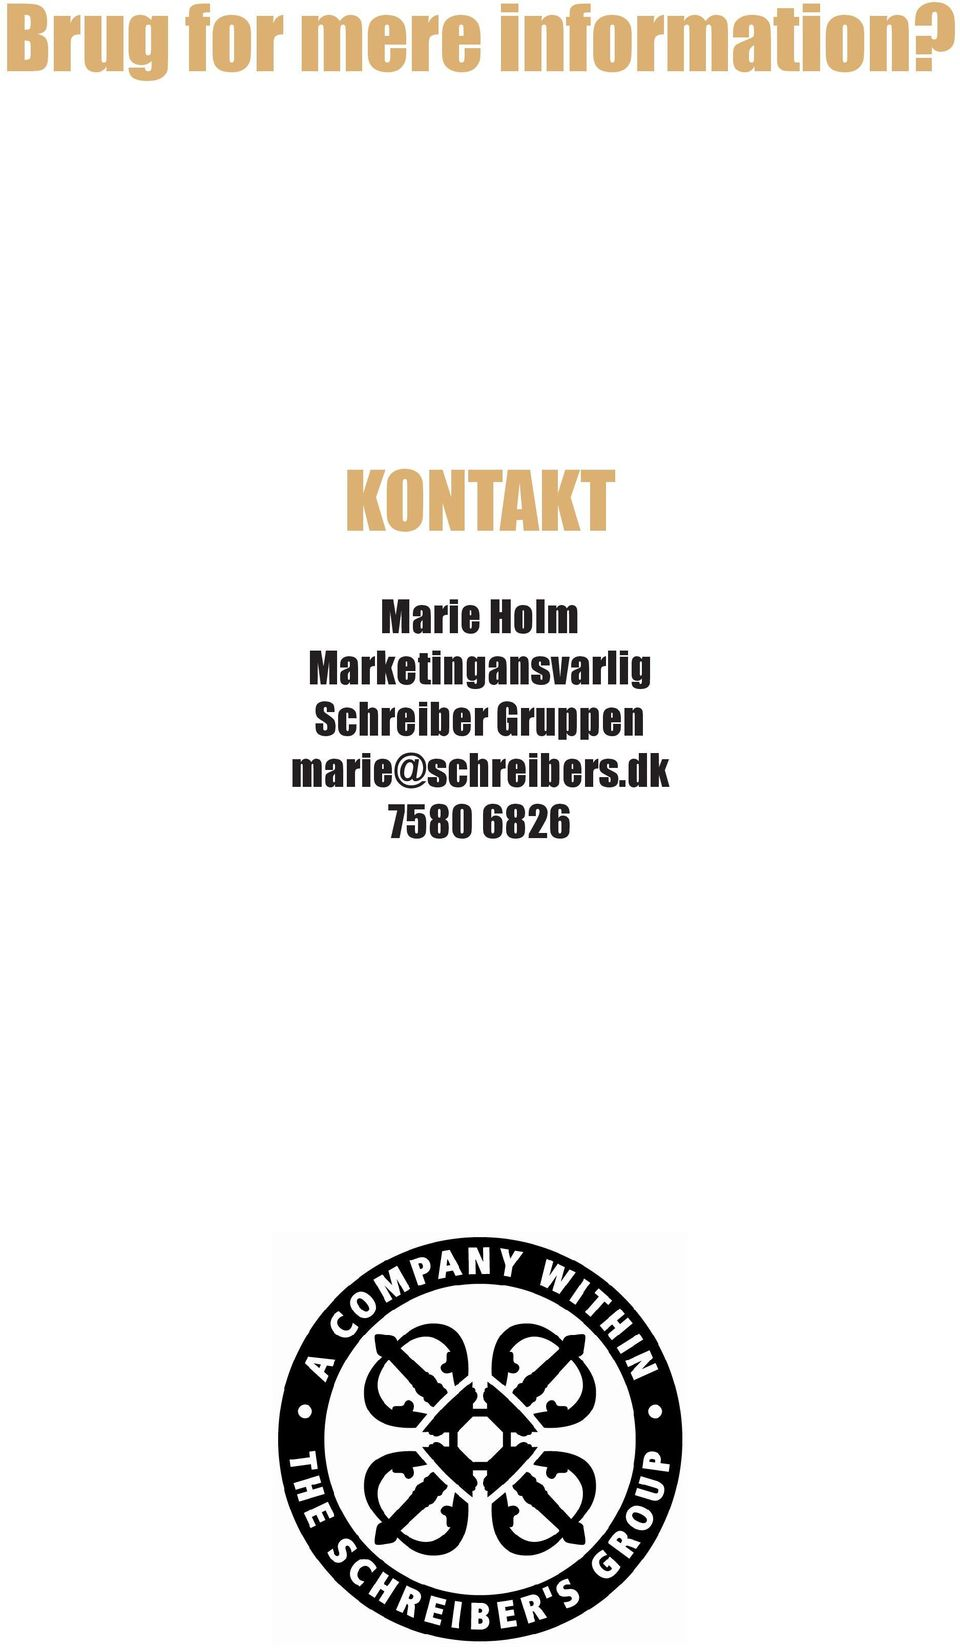 Marketingansvarlig